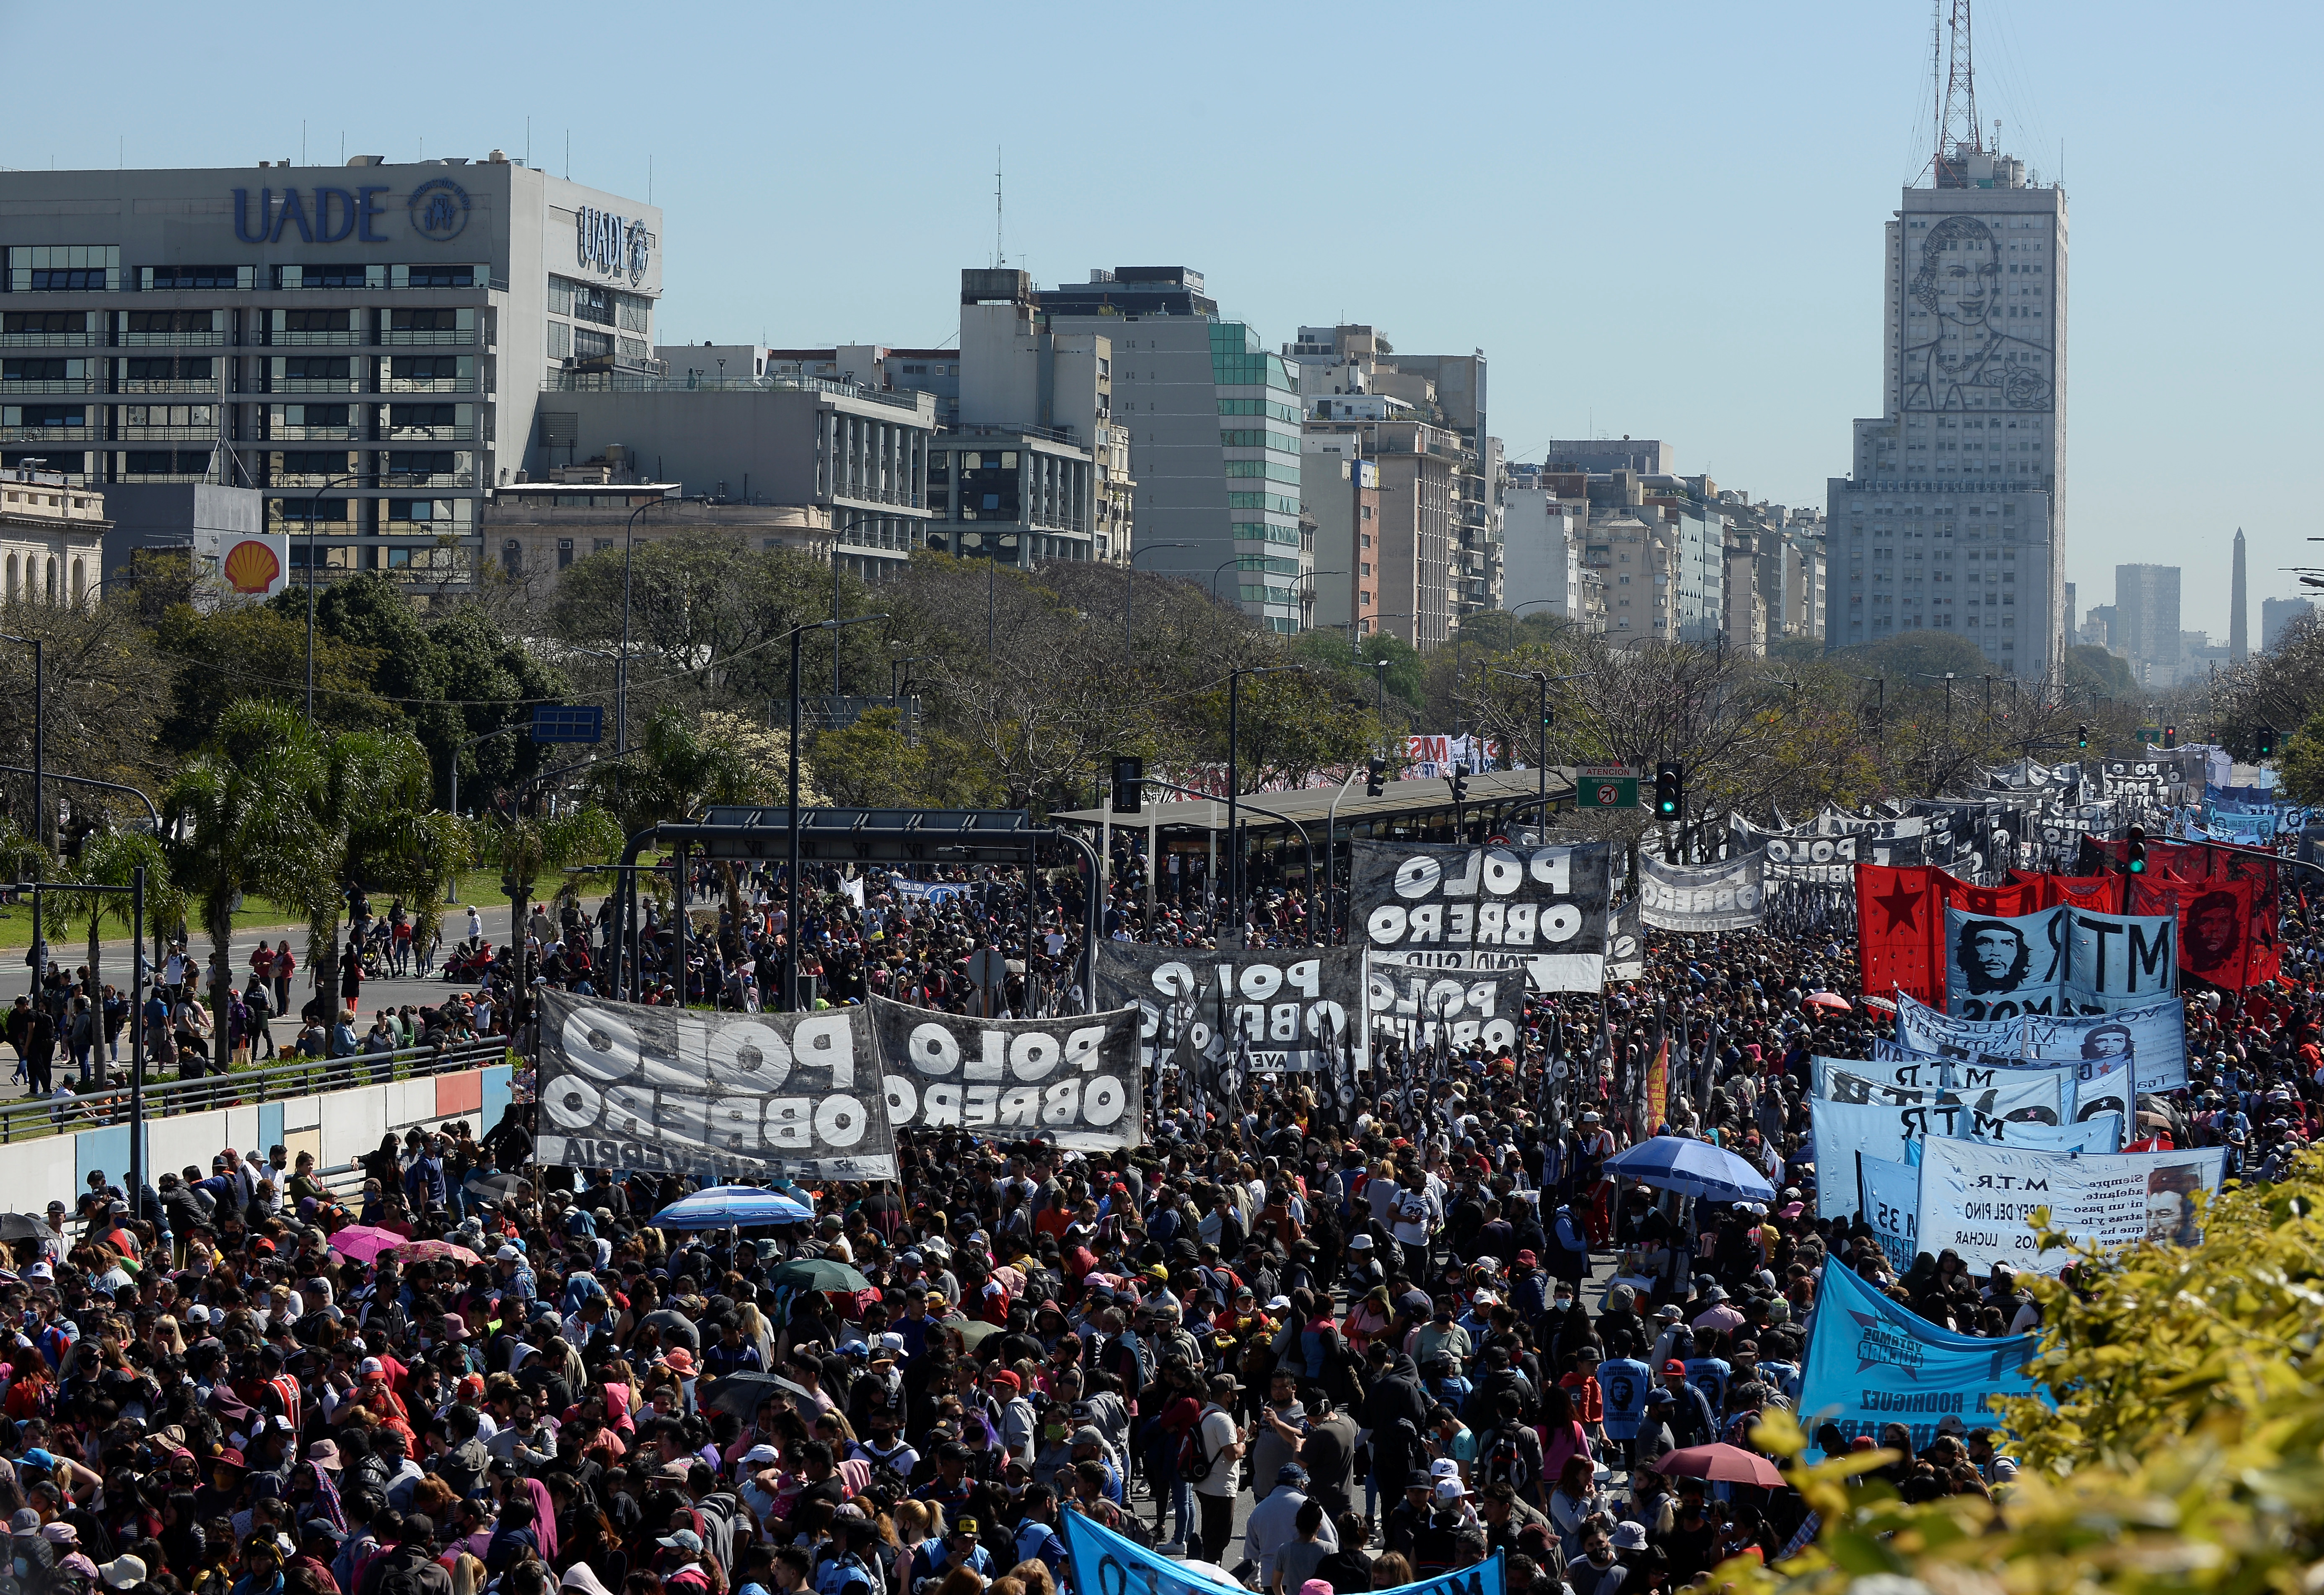 Demonstrators march to protest against unemployment, food insecurity and lack of resources near an image of Argentina's former first lady Eva Peron, in Buenos Aires, Argentina September 16, 2021.  REUTERS/Mariana Nedelcu